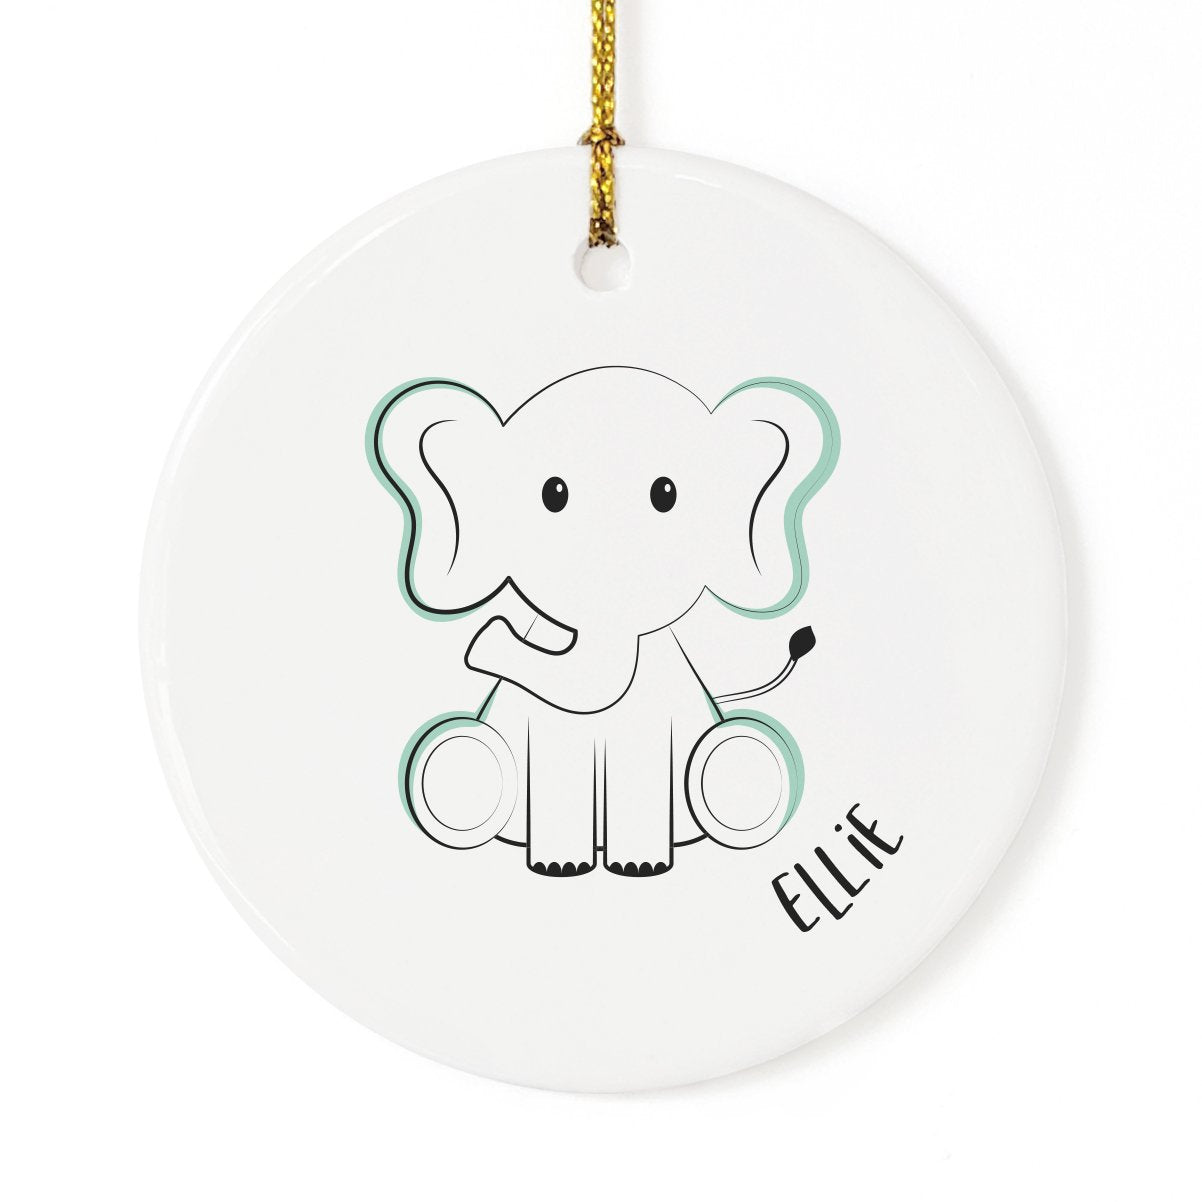 Personalized Name Elephant Christmas Ornament